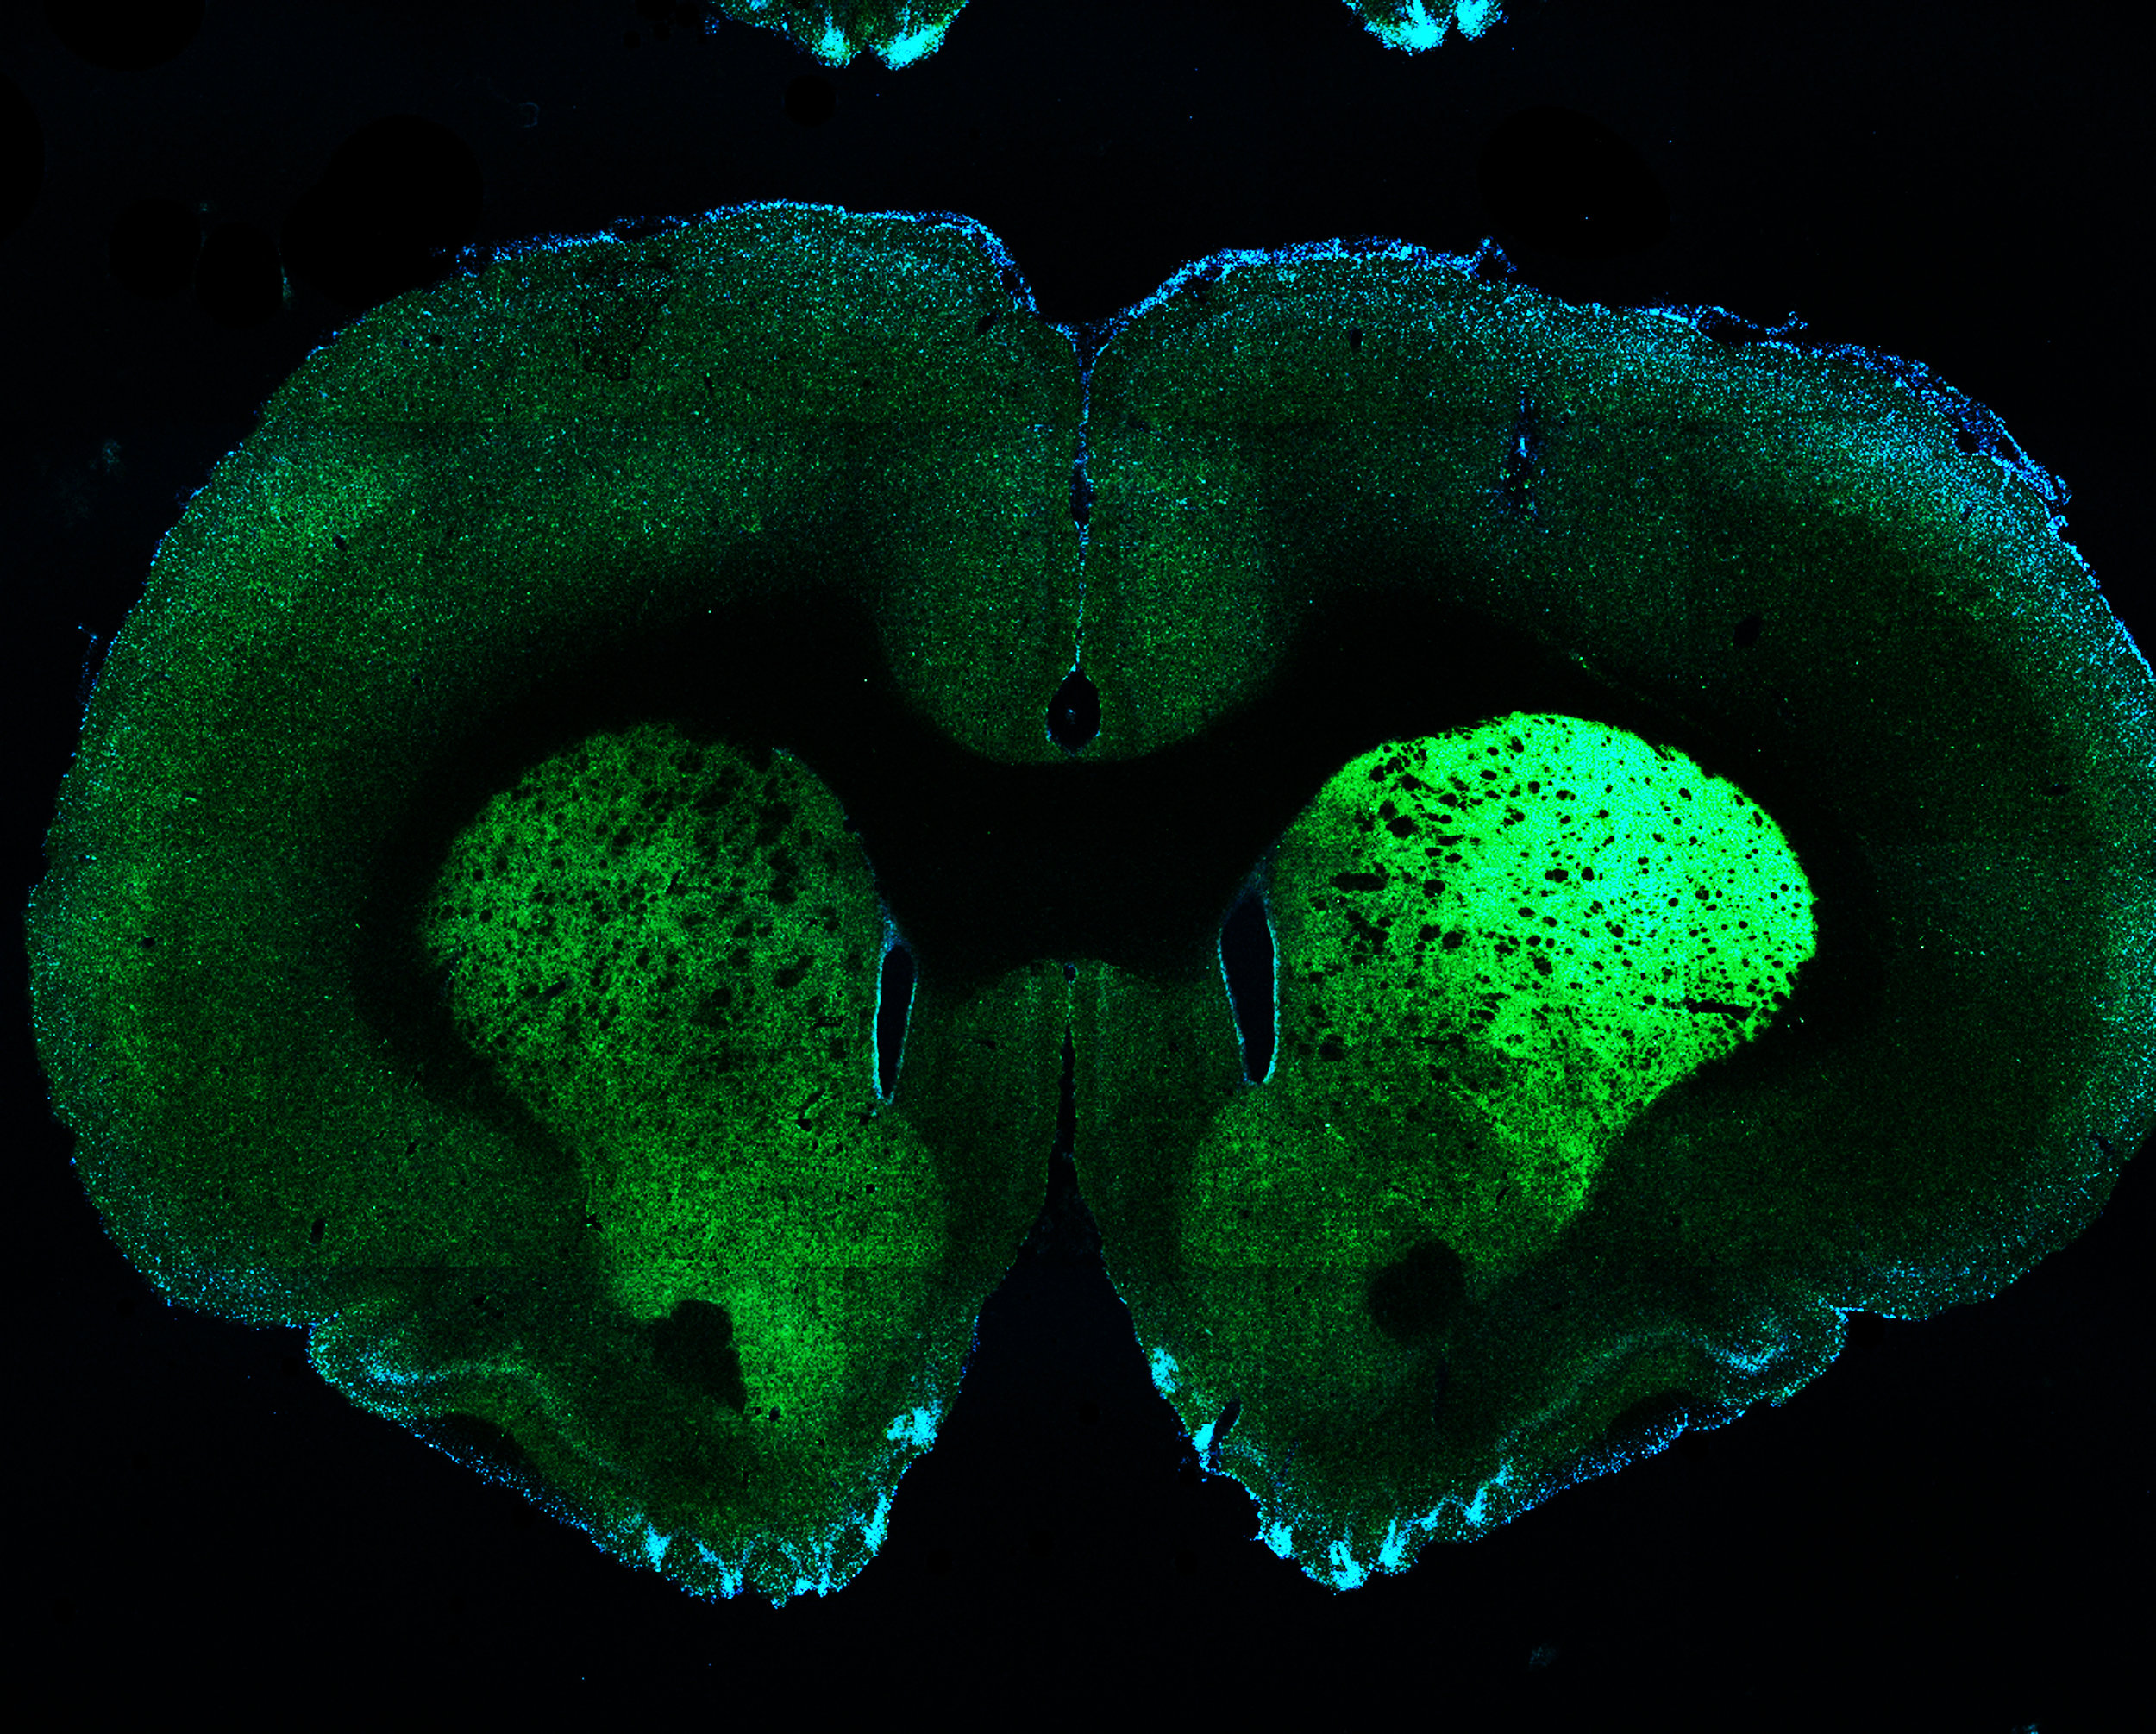 Whole brain coronal section image. Axon terminals from neurons in the substantia nigra in the dorsal striatum (green, left side).